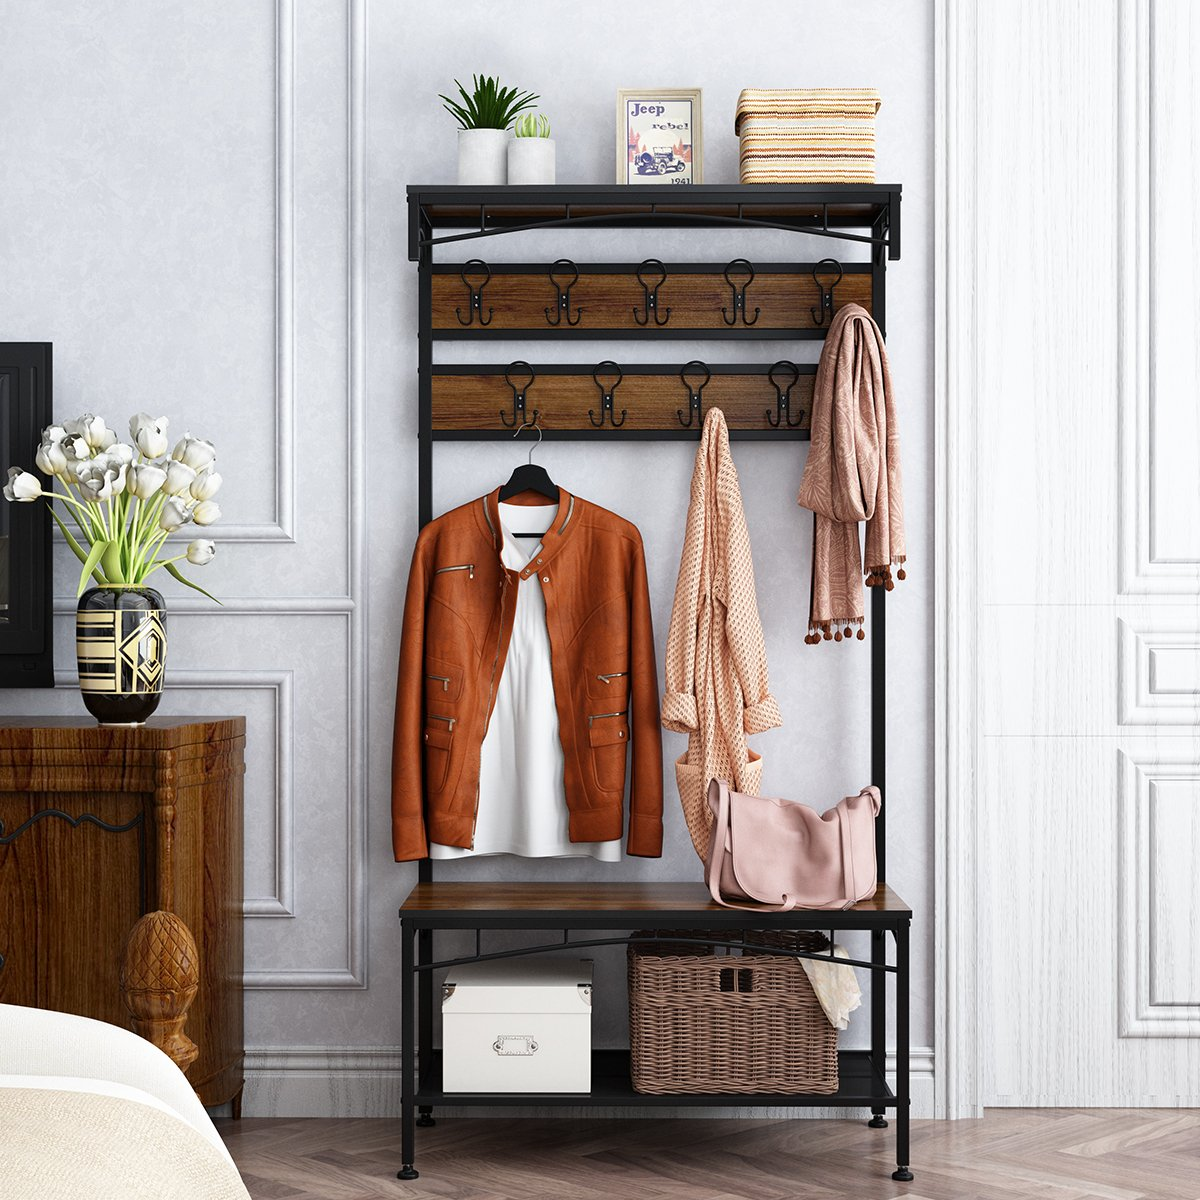 Rackaphile 3-in-1 Entryway Coat Rack, Vintage Metal and Wood Hall Tree with Storage Bench Shoe Rack Entryway Storage Shelf Organizer with 18 Hooks